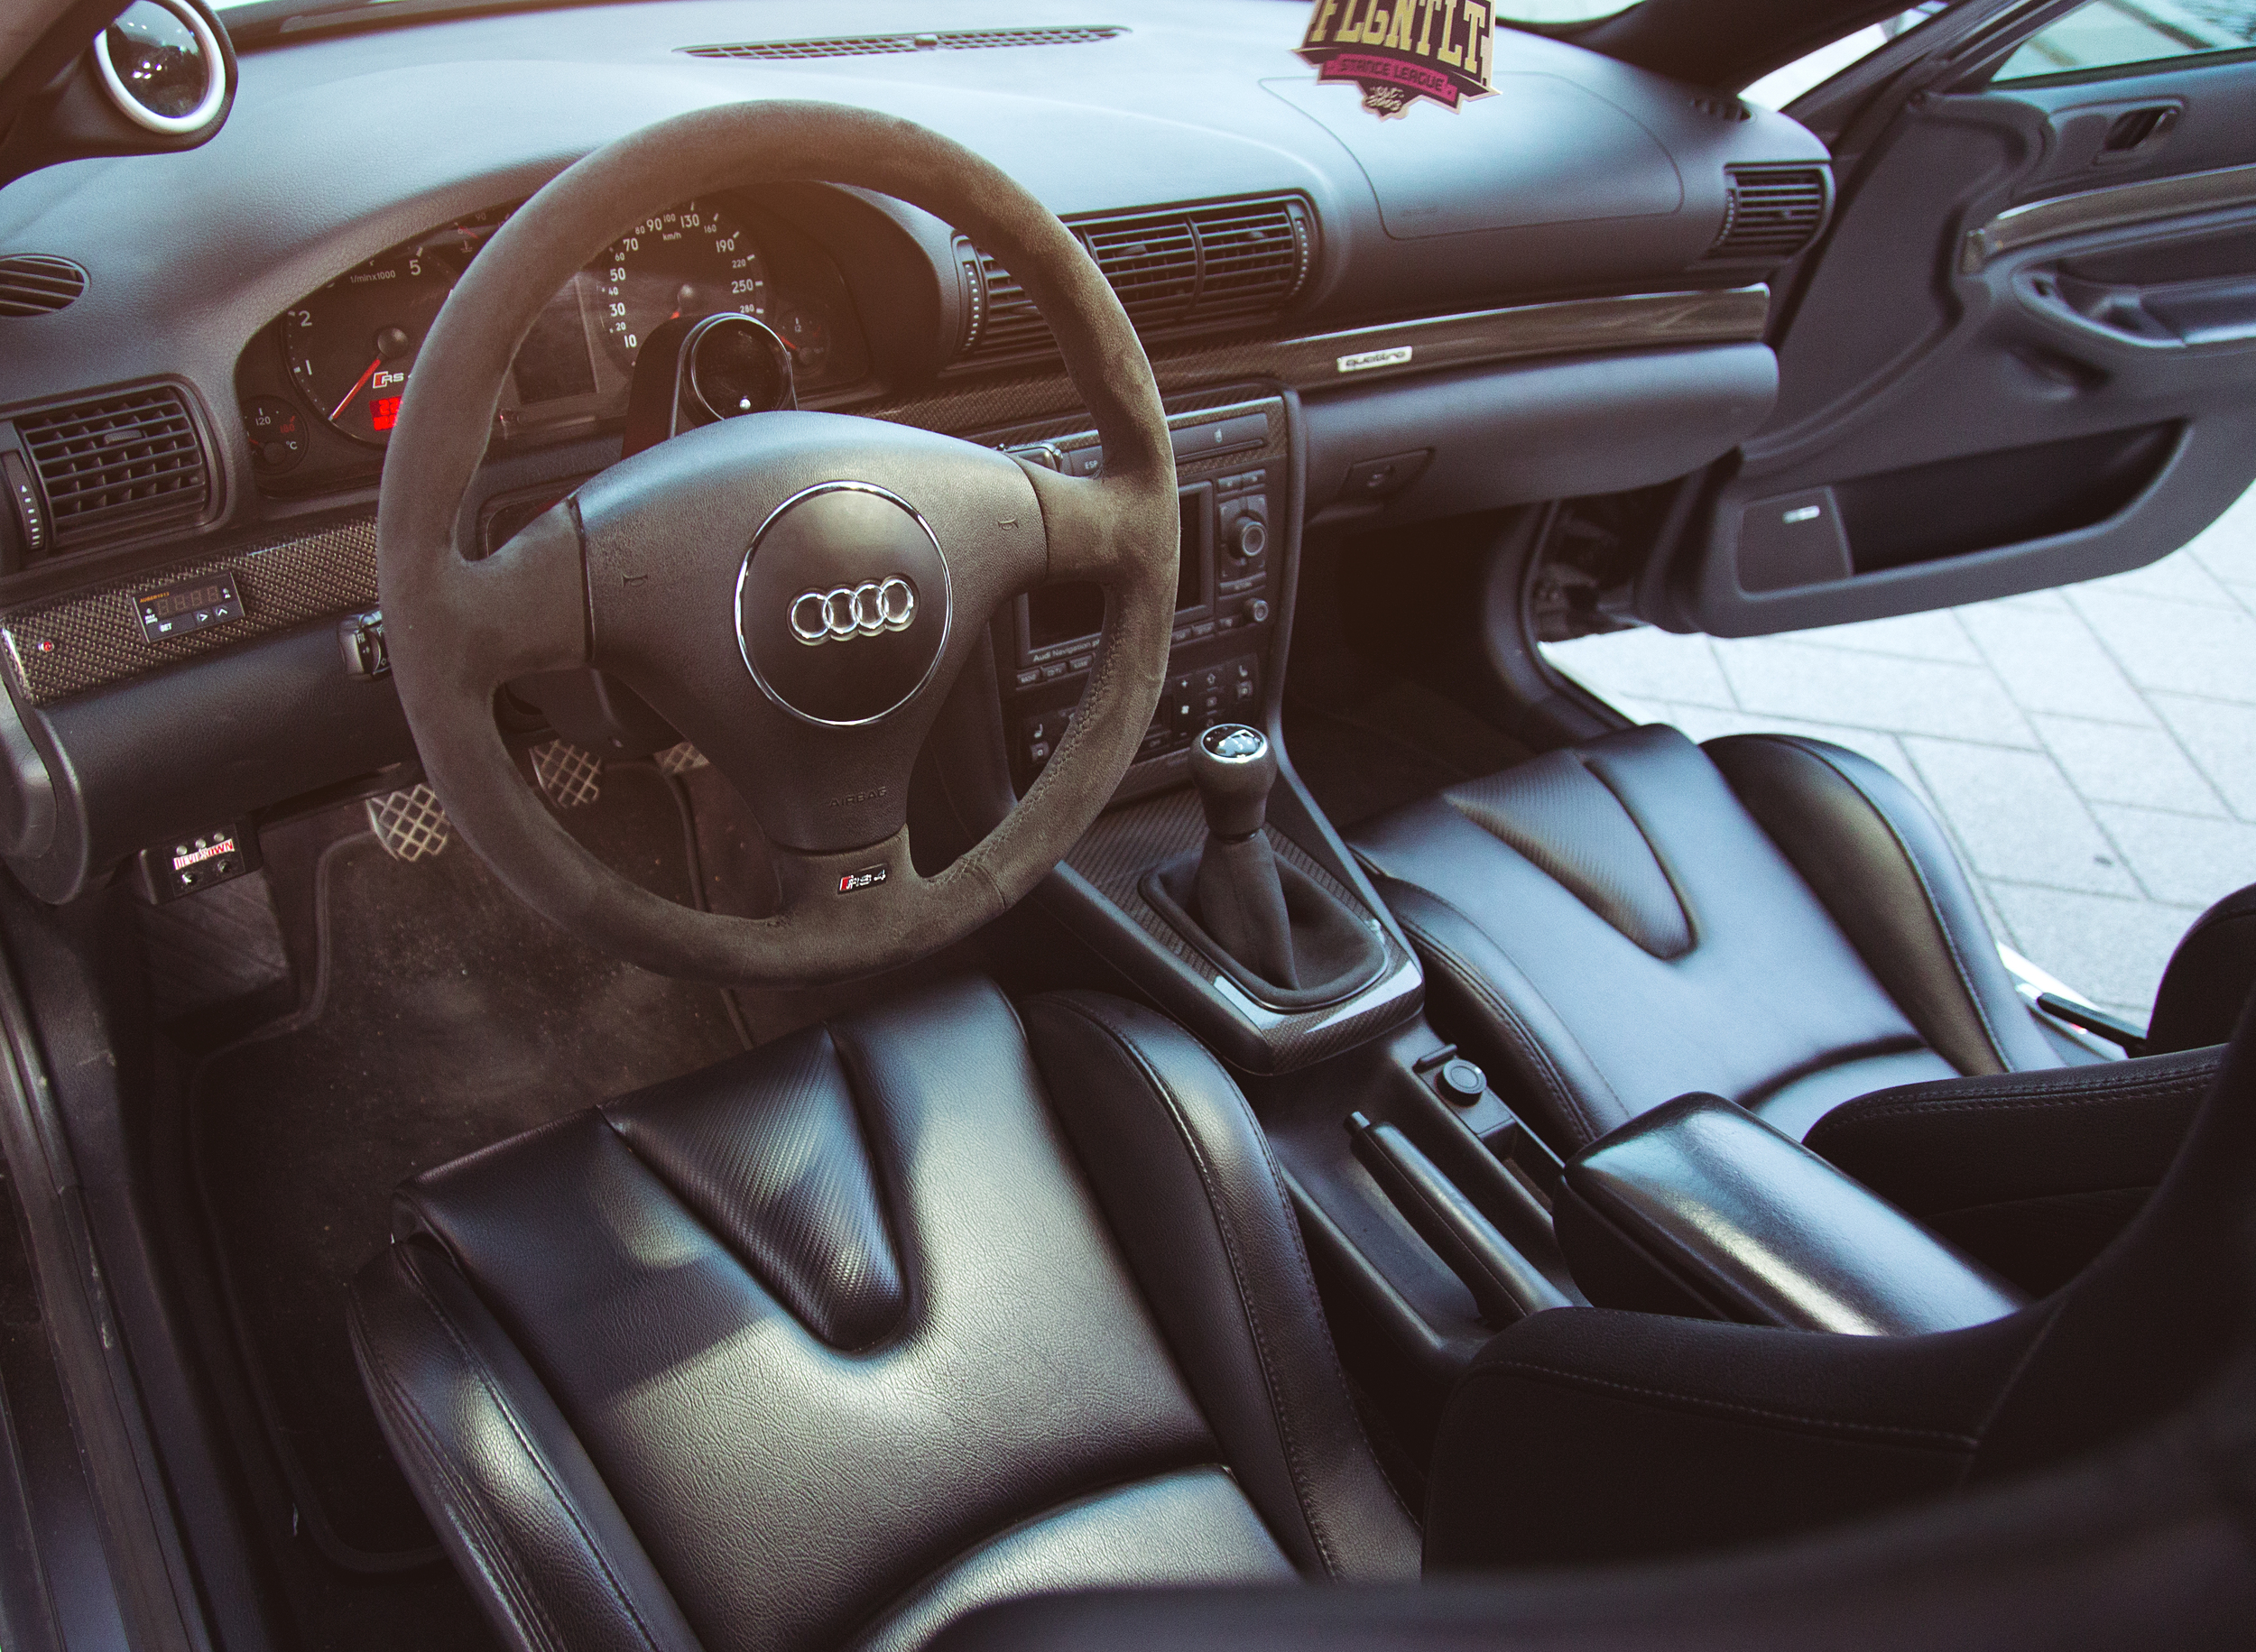 The cockpit is refined with performance and driveability in mind.